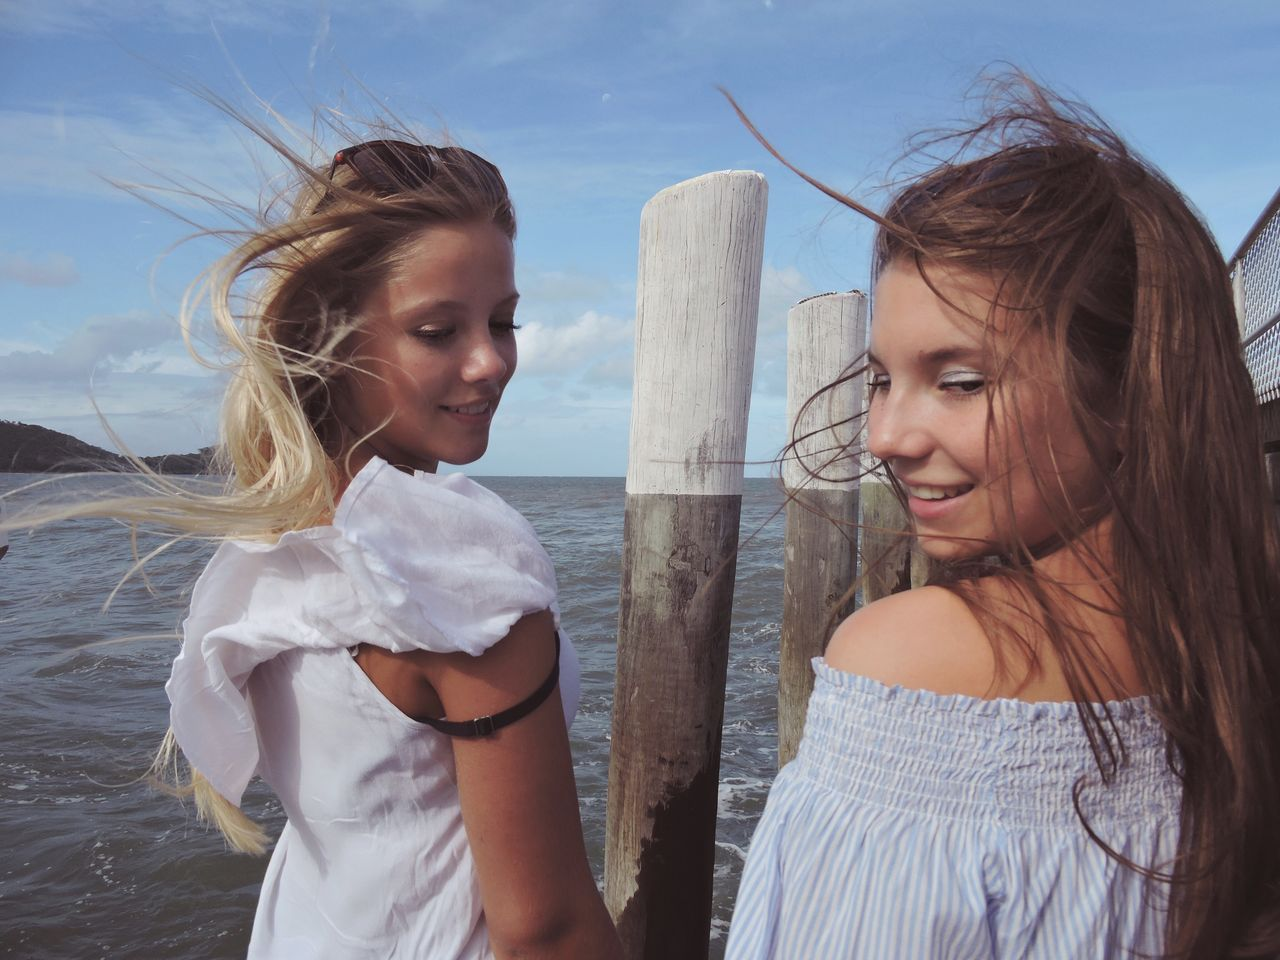 Young Two People Young Women Real People Young Adult Sky Day Sea Women Long Hair Smiling Beach Nature Togetherness Close Up Freshness Fun Freedom Enjoying Life Friendship Vacation Holiday Holidays Trip Wind The Portraitist - 2017 EyeEm Awards Live For The Story The Portraitist - 2017 EyeEm Awards